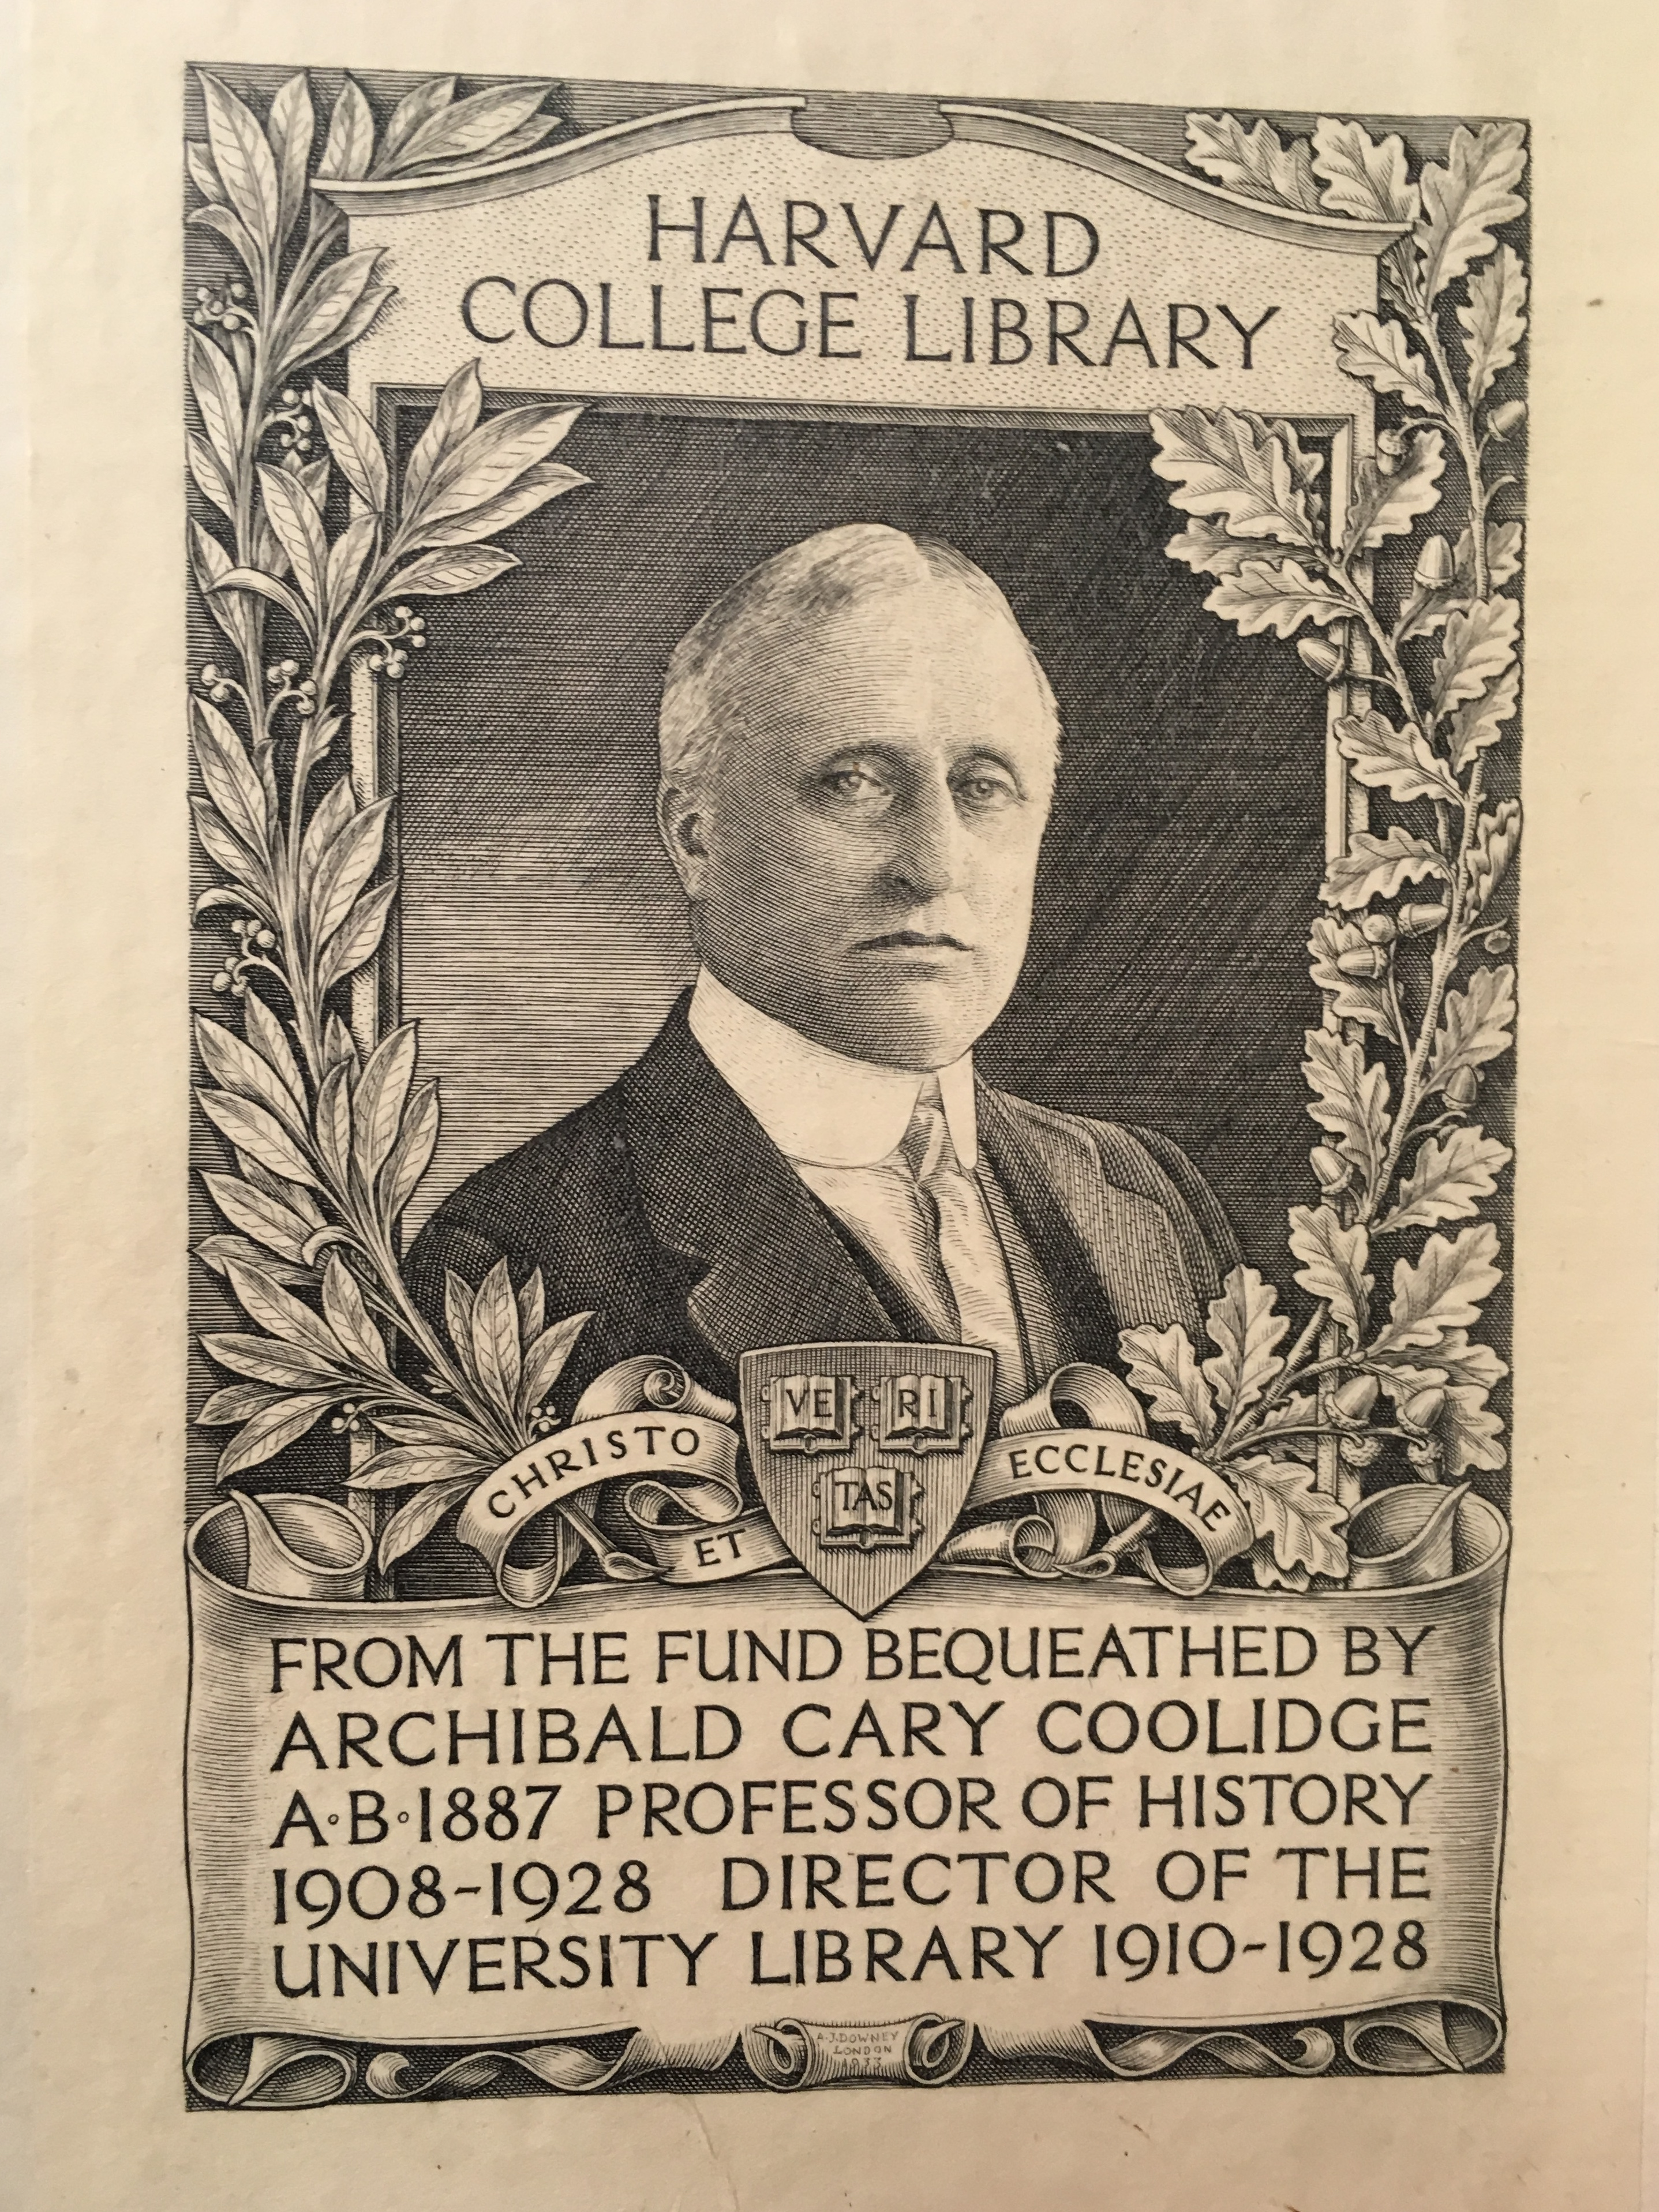 Archibald Cary Coolidge on a bookplate